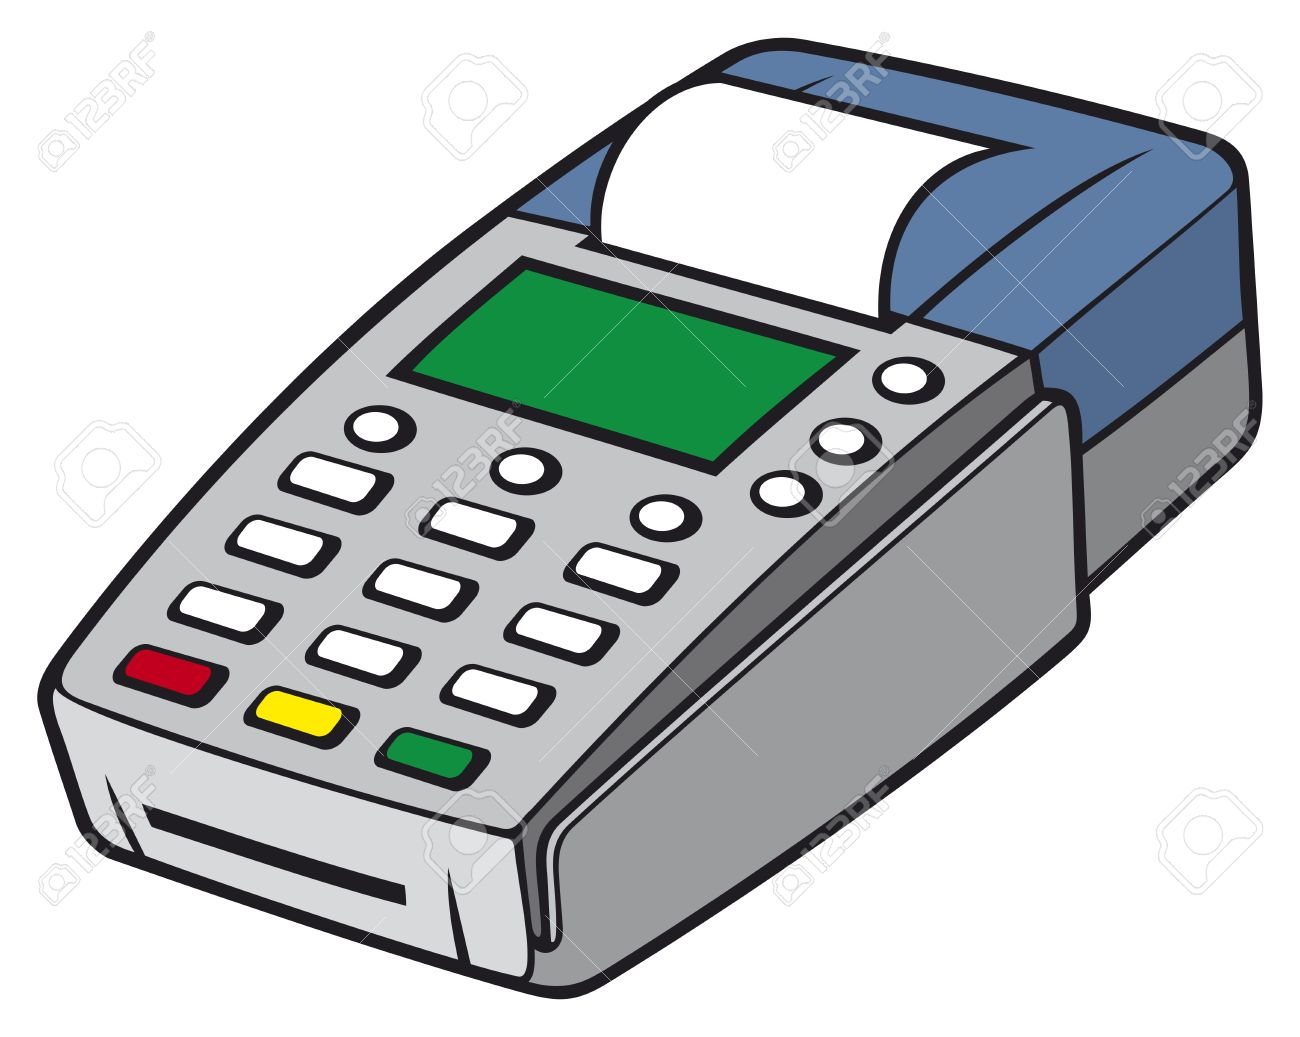 Credit card machines small business gallery free business cards credit card machine for business image collections free business card payment machine for small business choice magicingreecefo Image collections